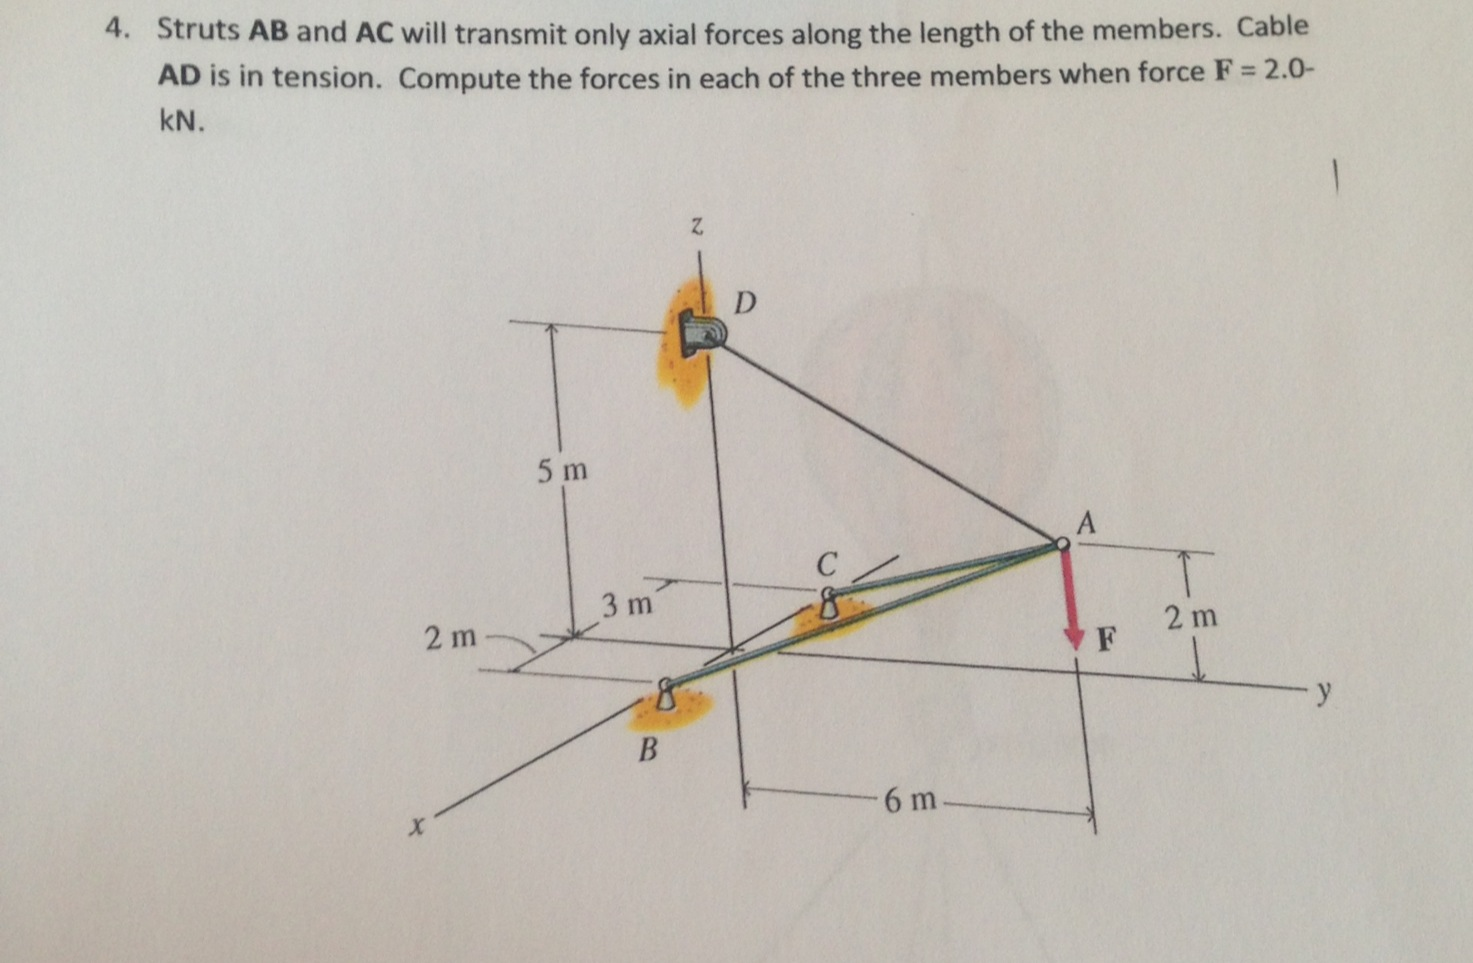 Struts AB and AC will transmit only axial forces a